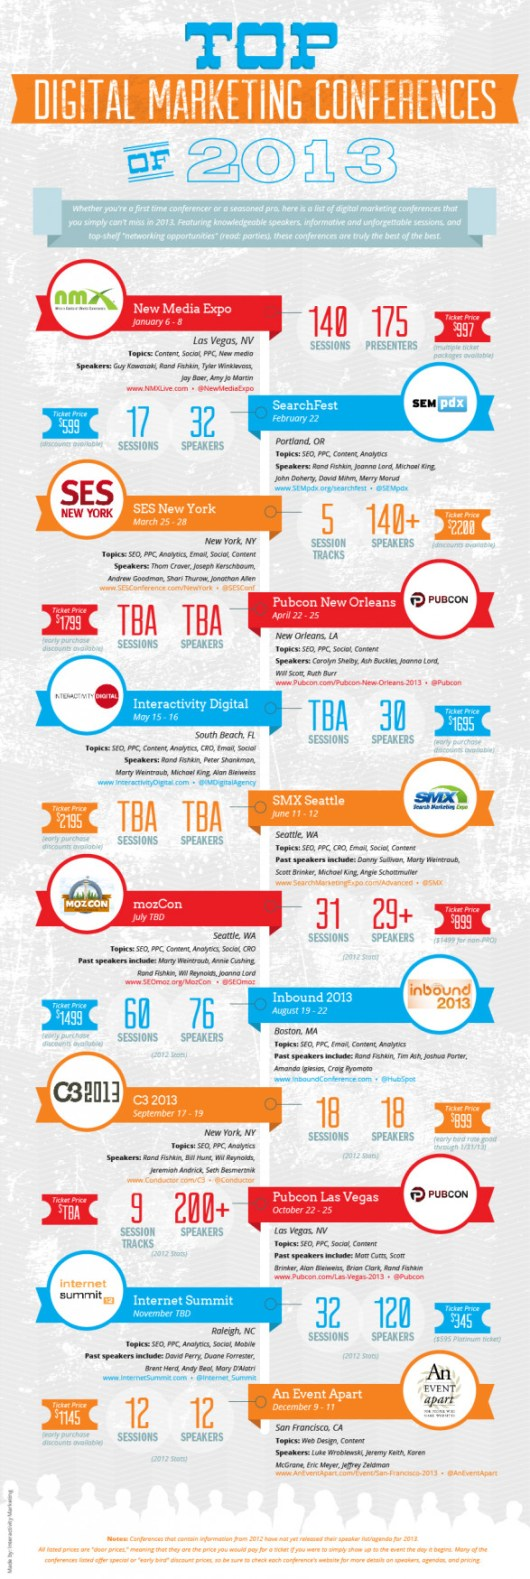 Top Digital Marketing Conferences of 2013